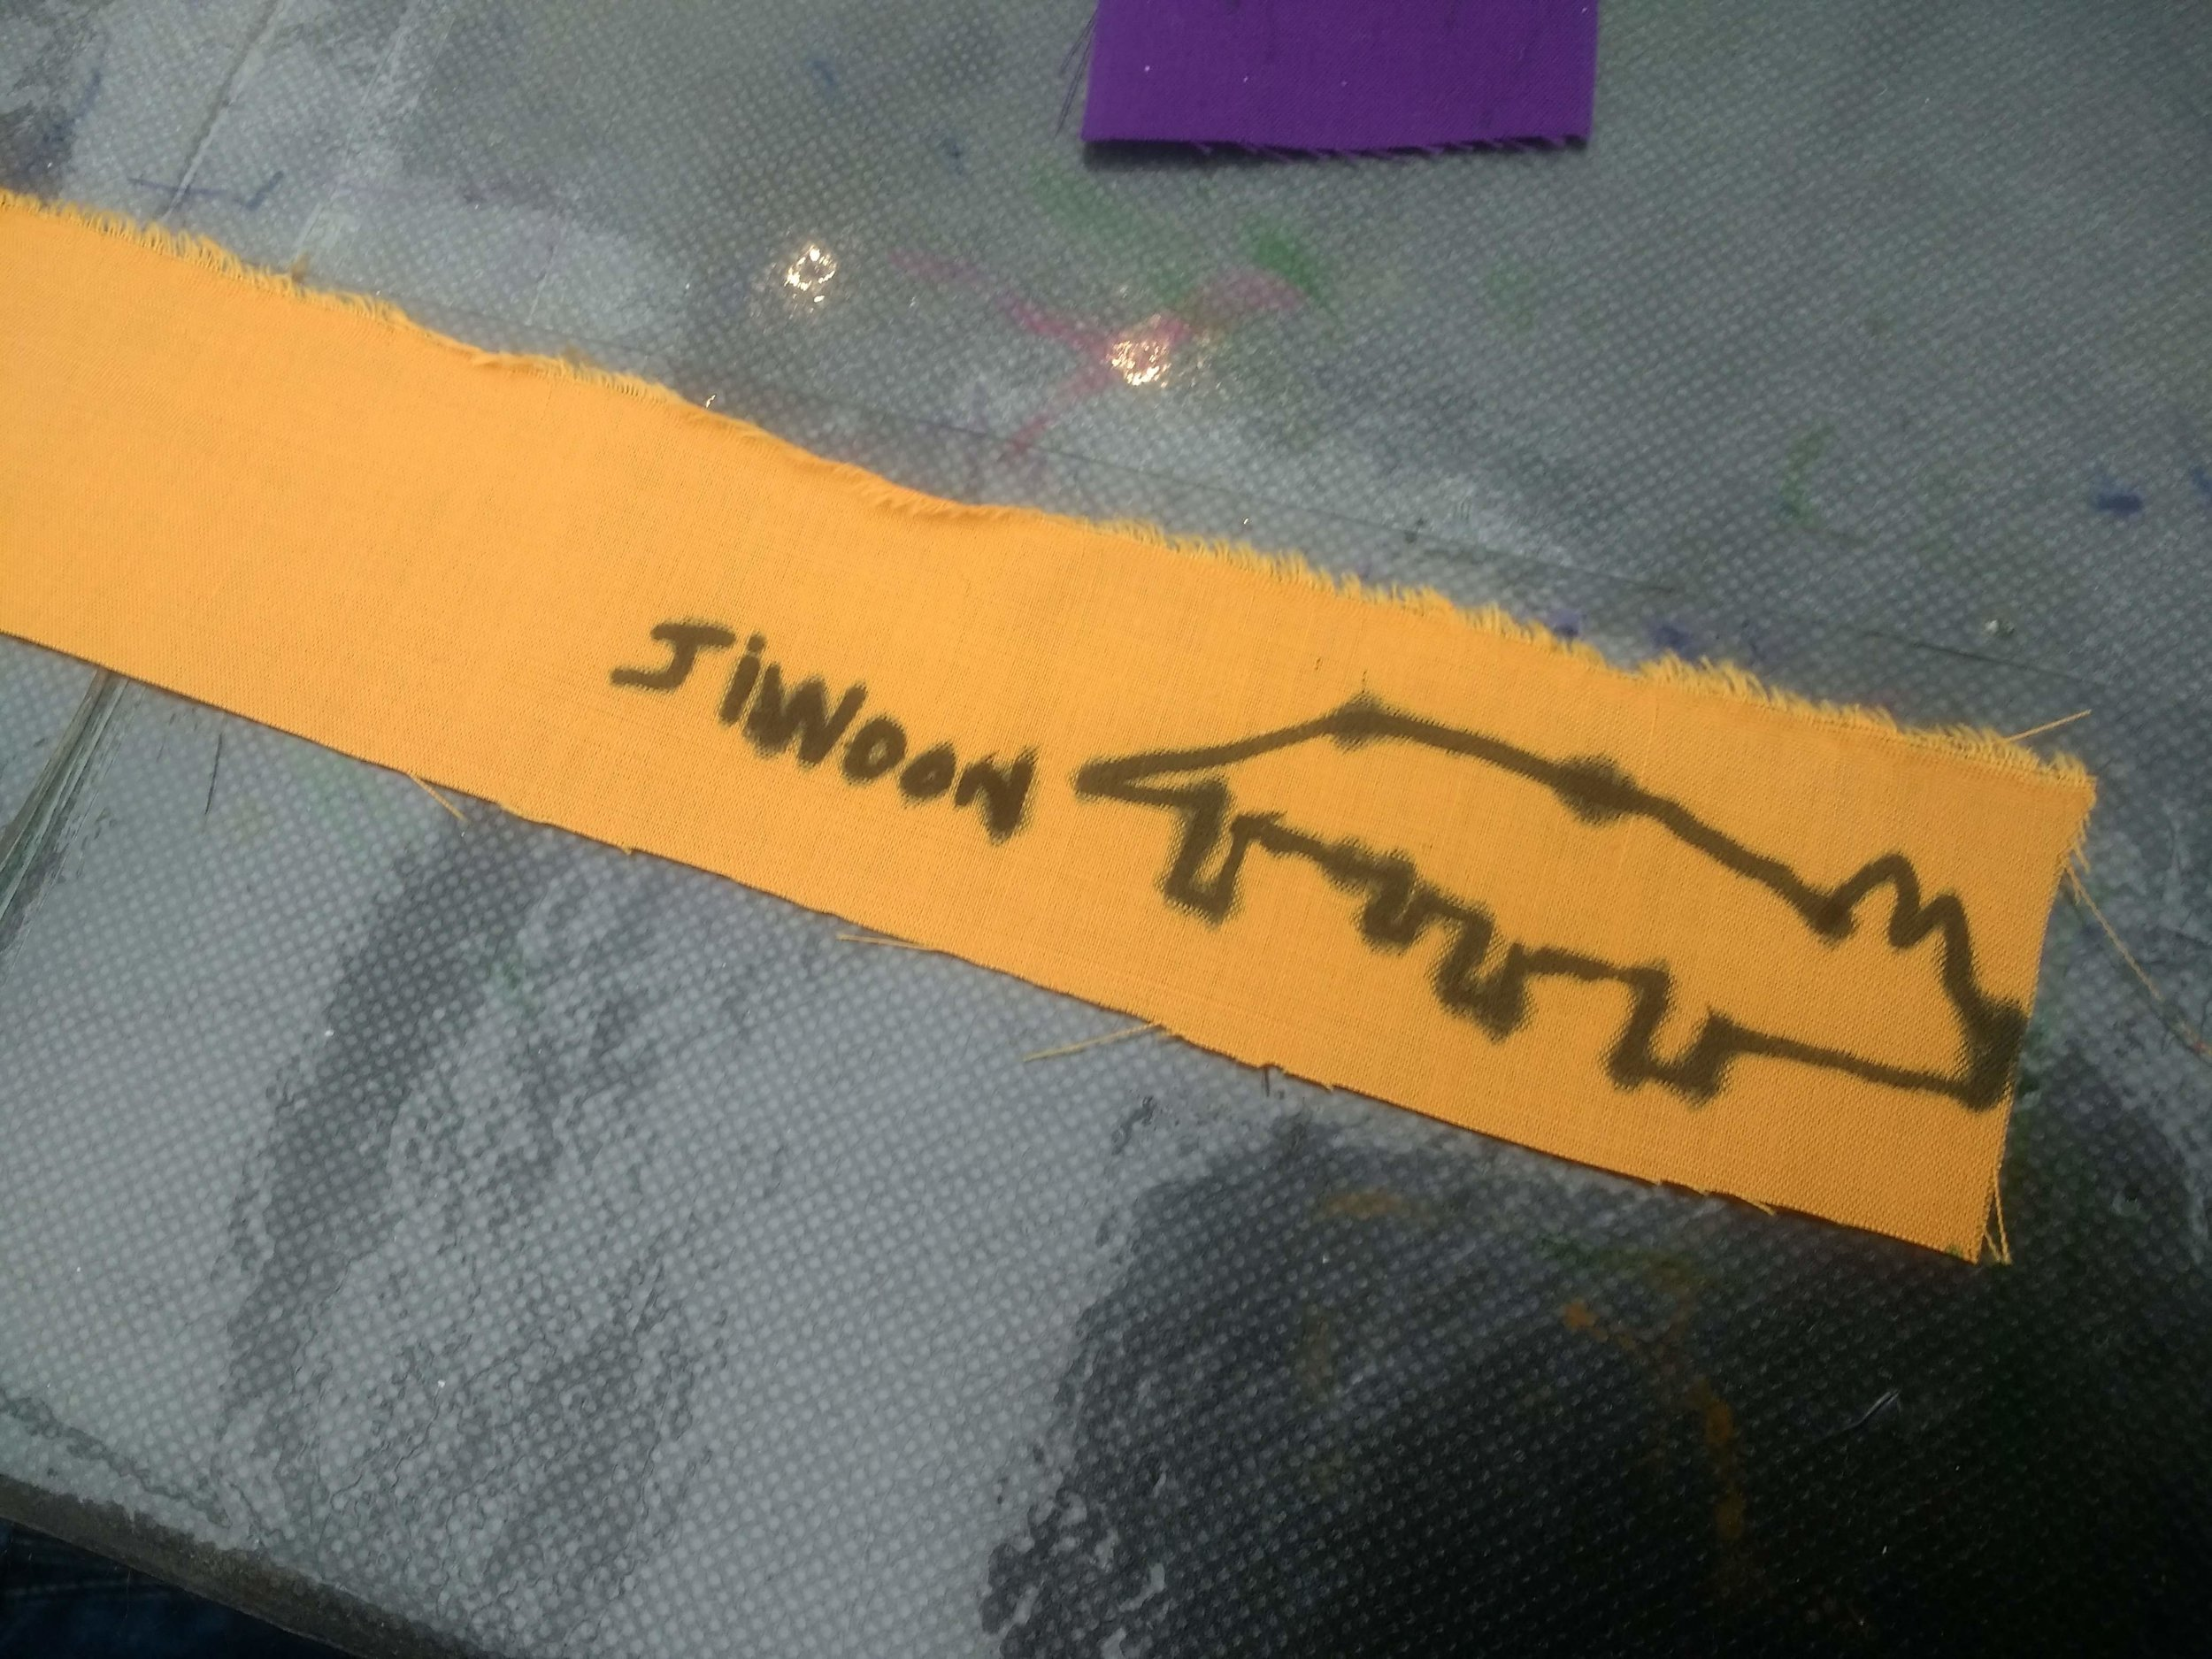 A yellow strip of material which says 'Jiwoon' on it